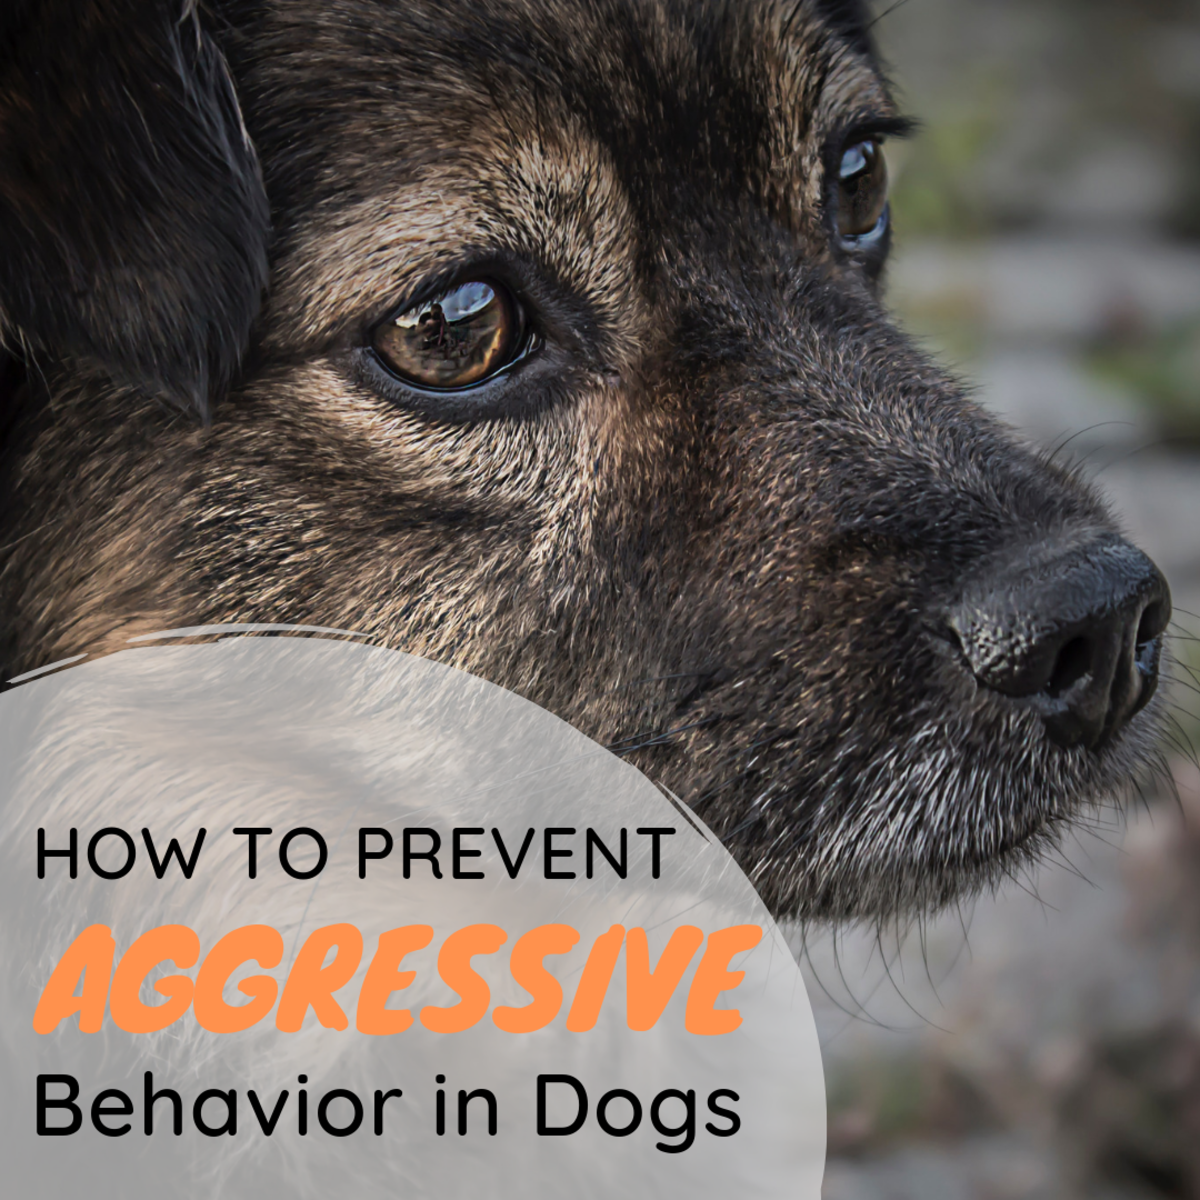 How to Prevent Aggressive Behavior in Dogs